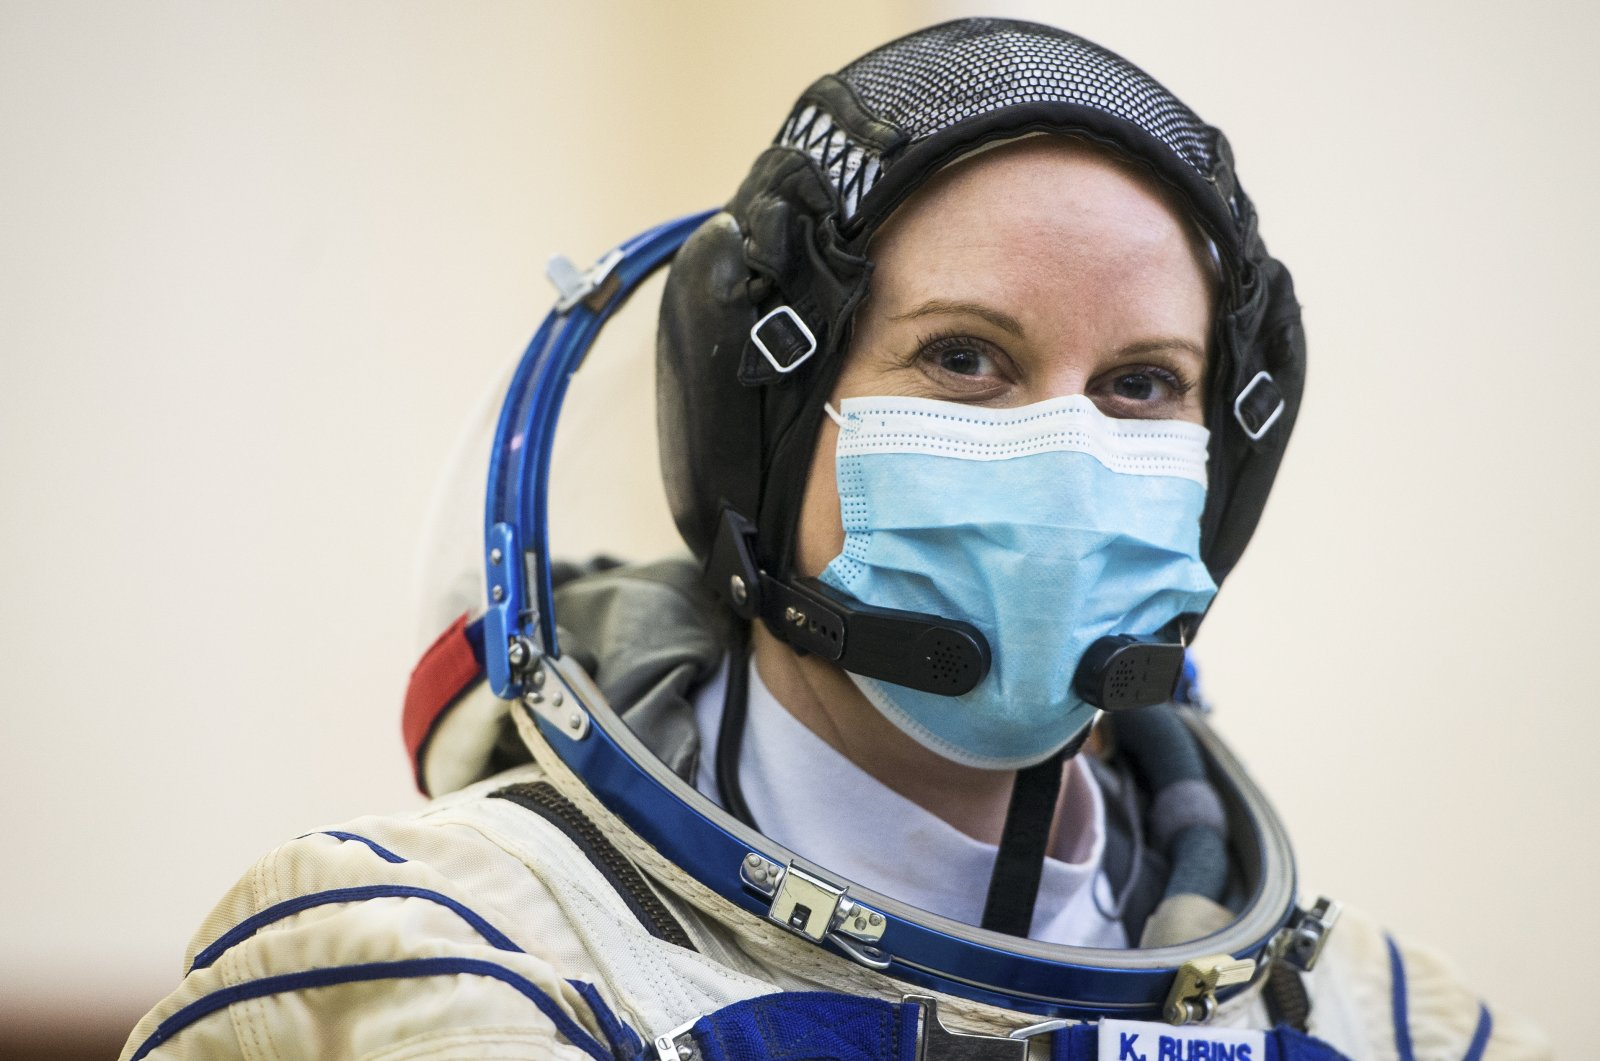 Expedition 64 crewmember NASA astronaut Kate Rubins, is seen during Soyuz qualification exams, Sept. 23, 2020, at the Gagarin Cosmonaut Training Center in Star City, Russia.(NASA Photo via AP)